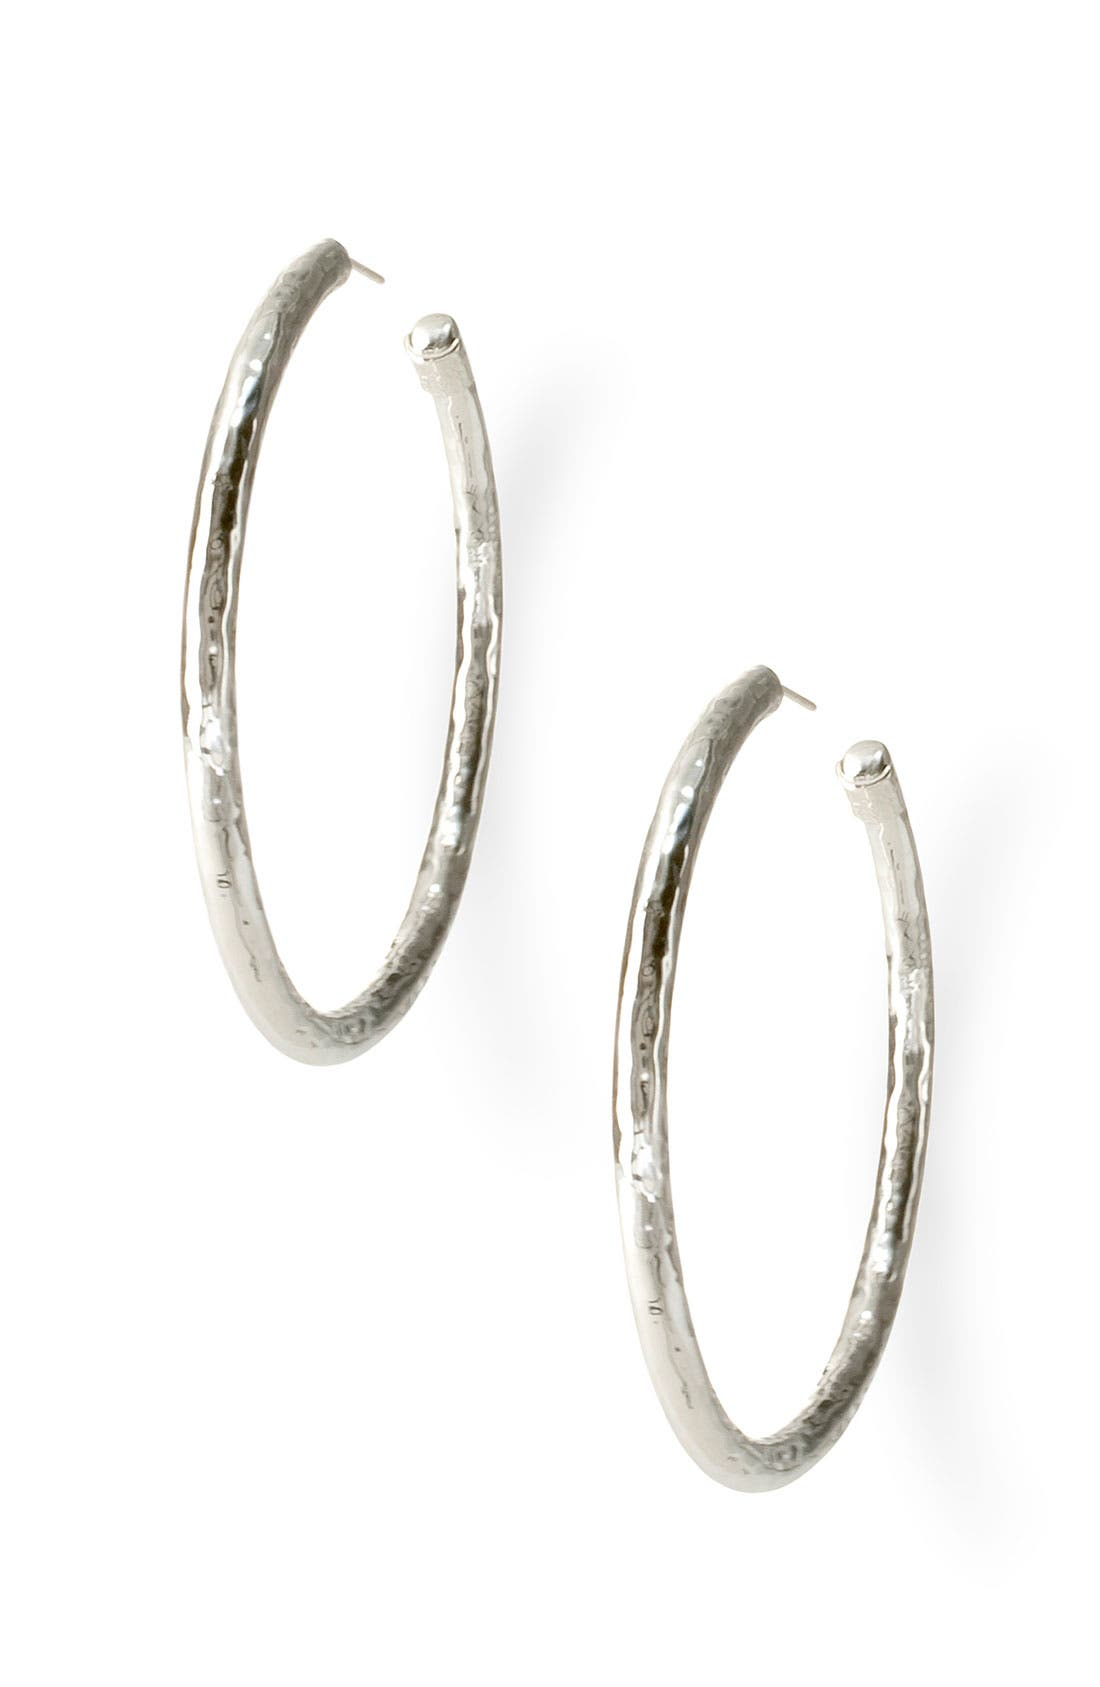 Alternate Image 1 Selected - Ippolita 'Glamazon - Number 4' Skinny Hammered Hoop Earrings